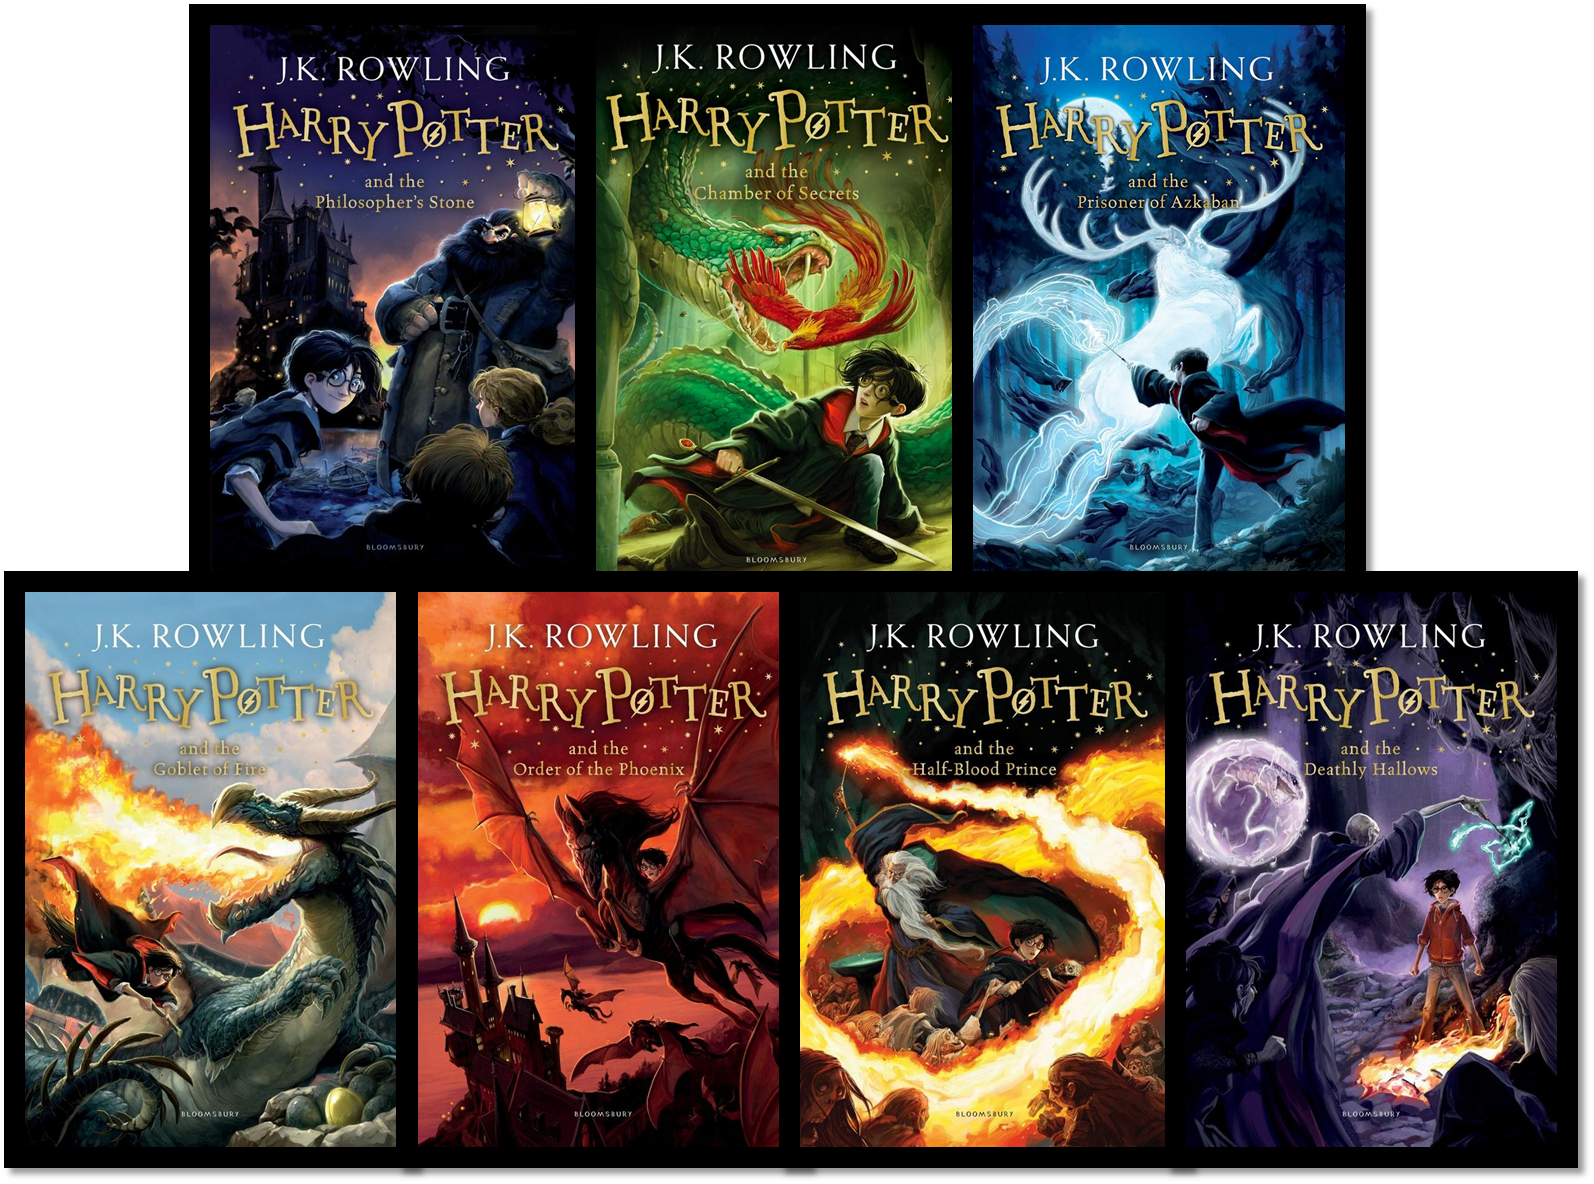 Harry Potter Book Cover Country : Bloomsbury new harry potter covers and artist interview